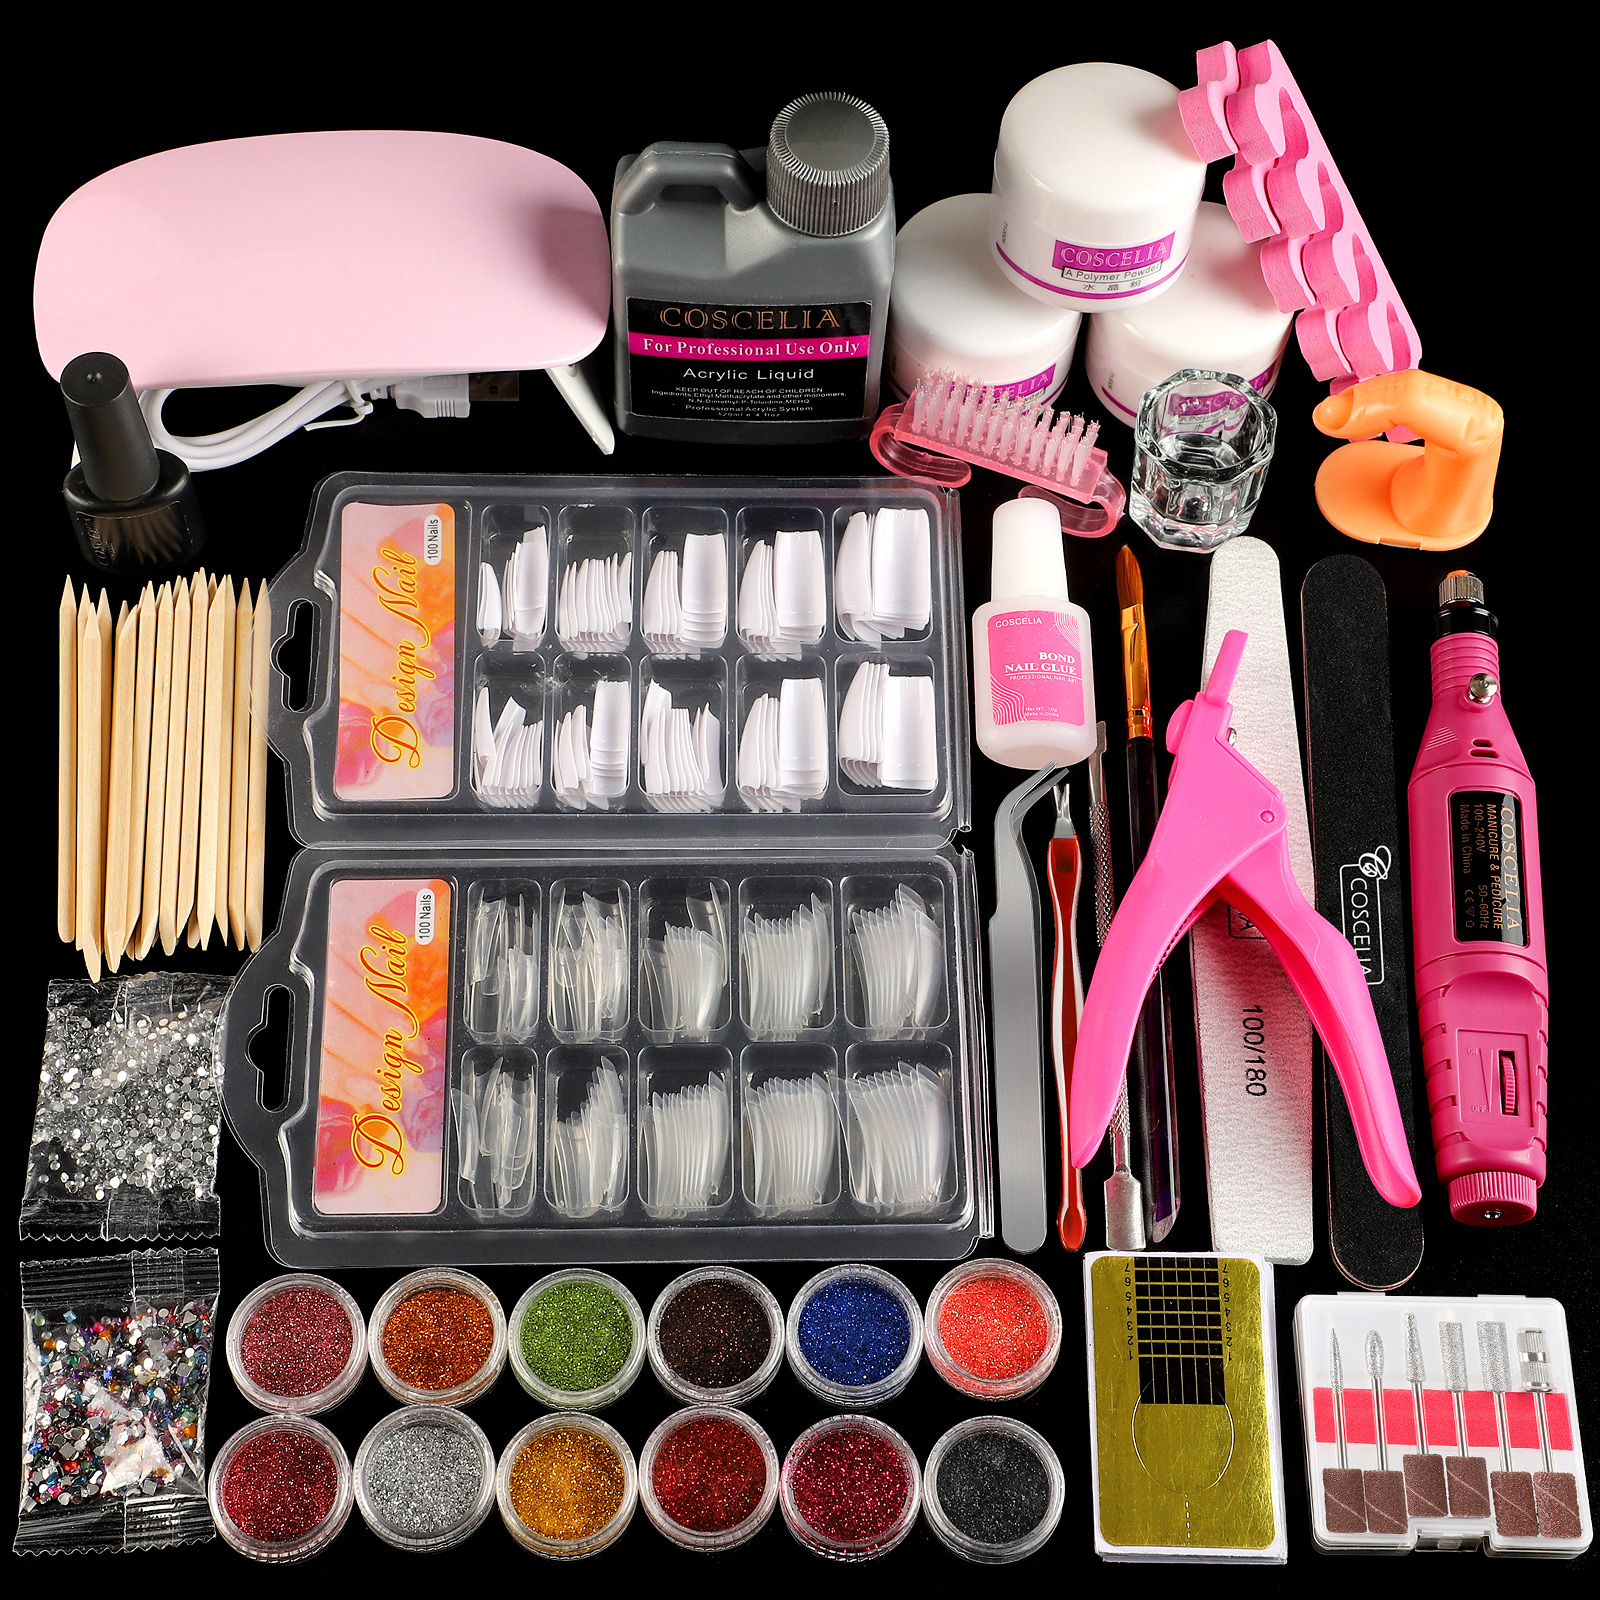 Acrylic Powder Set of Milling Cutters Nail Extension Set All For Manicure Gel Polish Set Nail Art Decorations Tools Nail Kit